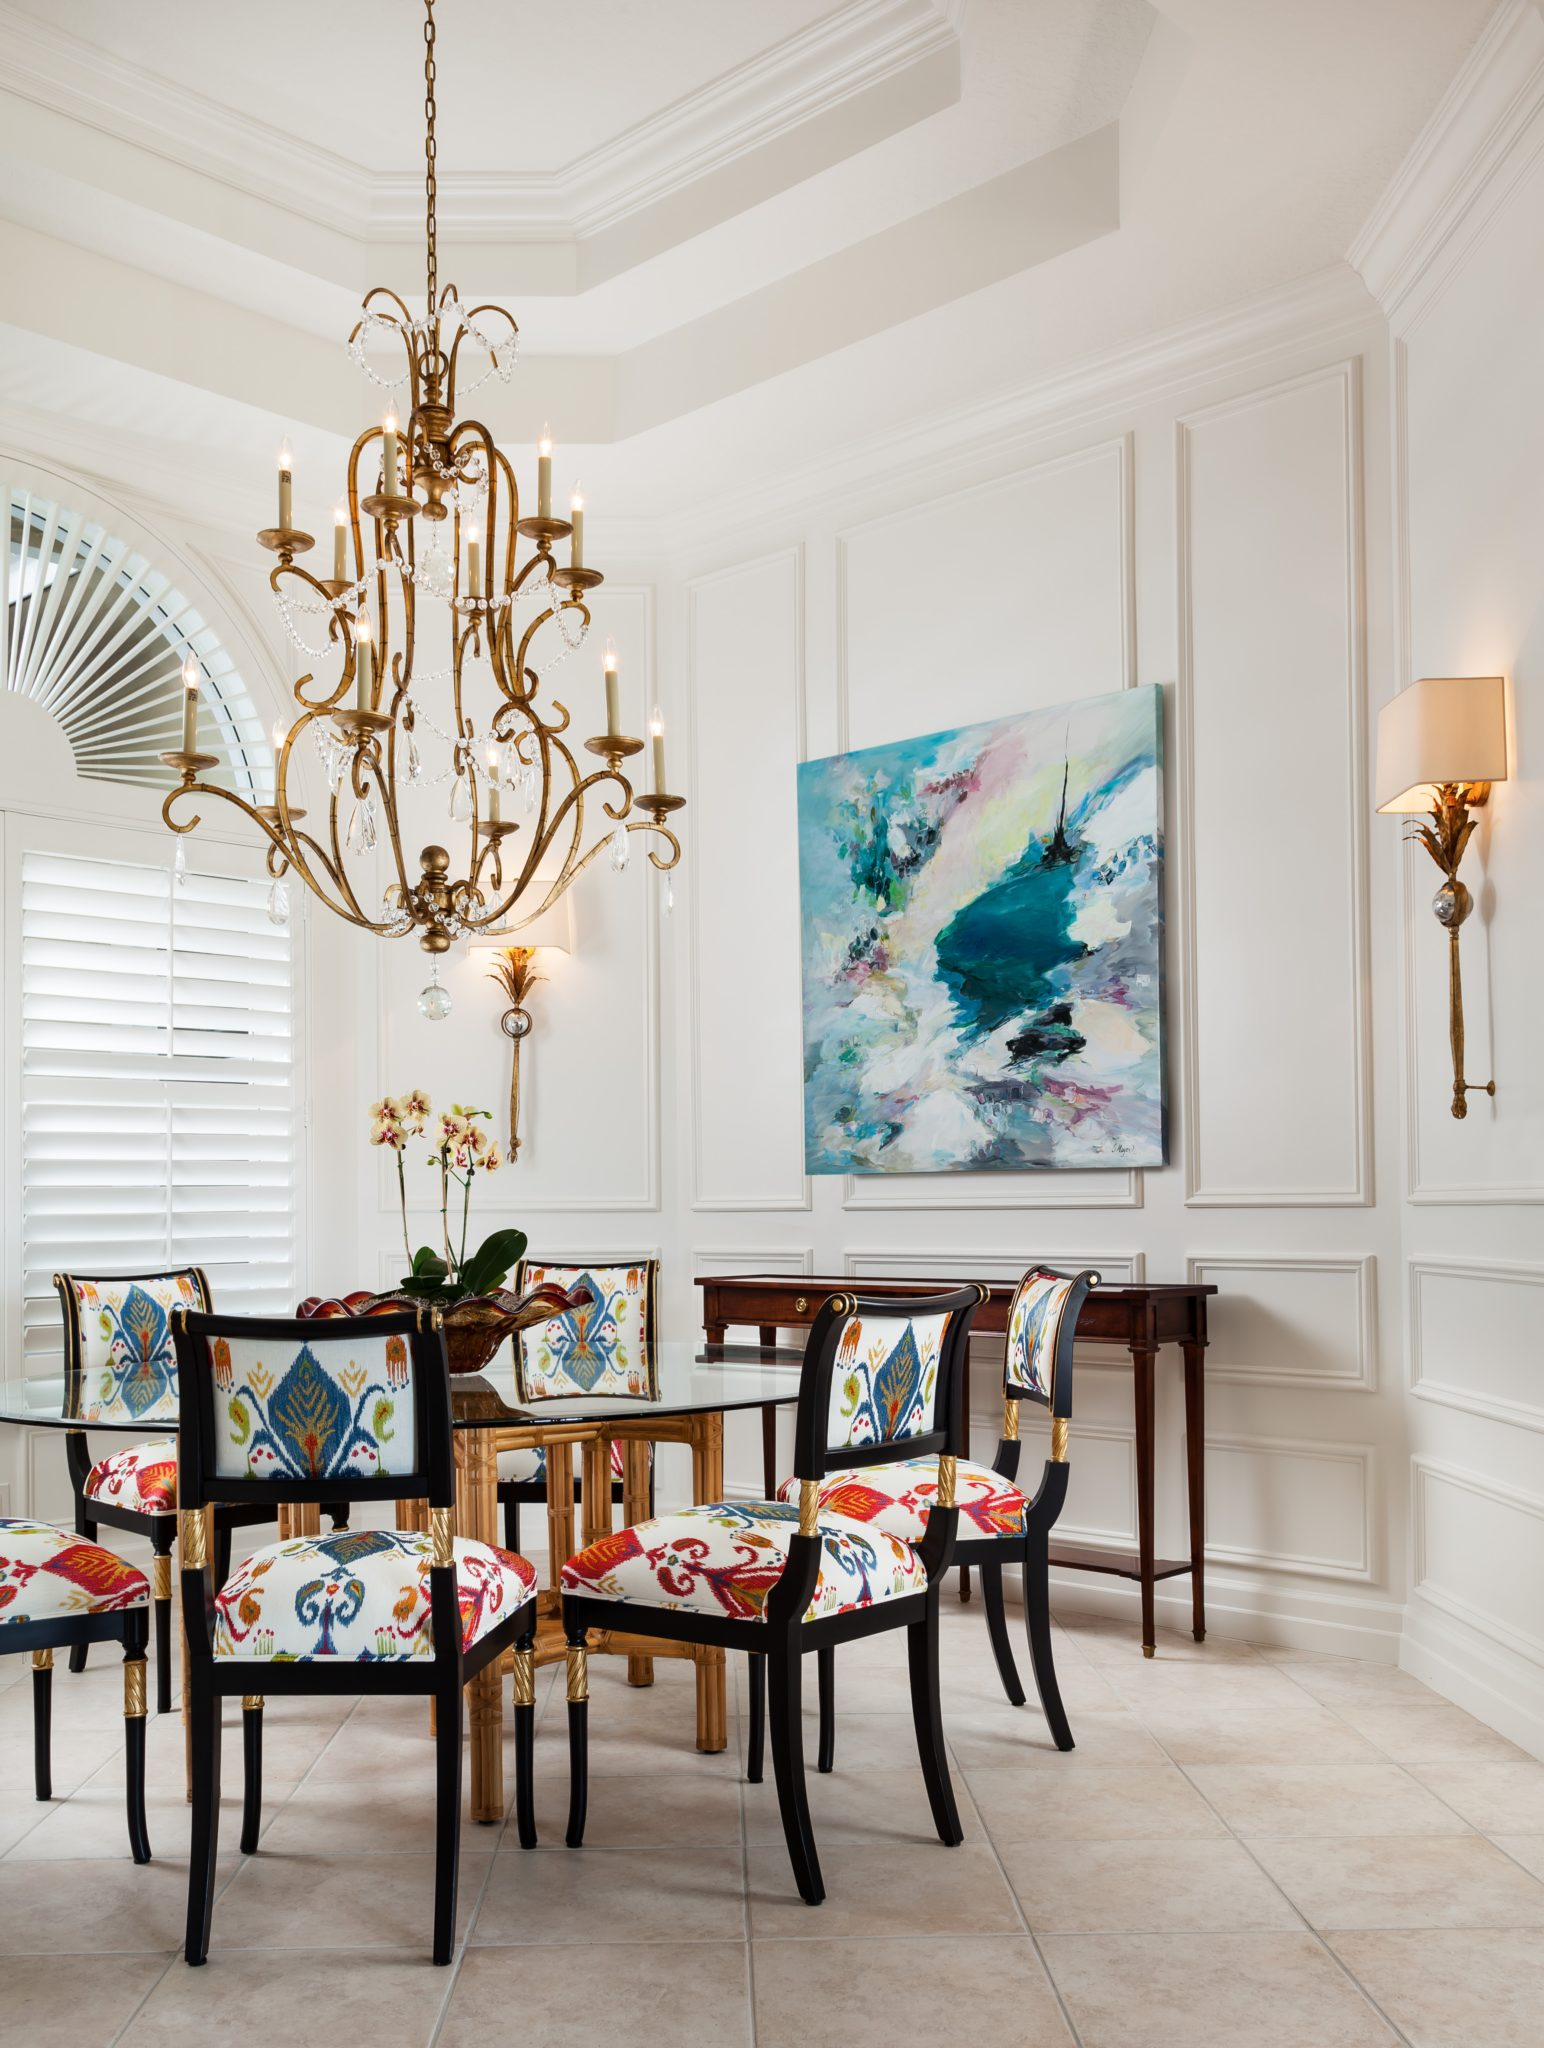 Dining chairs upholstered in patterned fabric, round glass top dining table and bronze chandelier with crystal pendants. By Gil Walsh Interiors